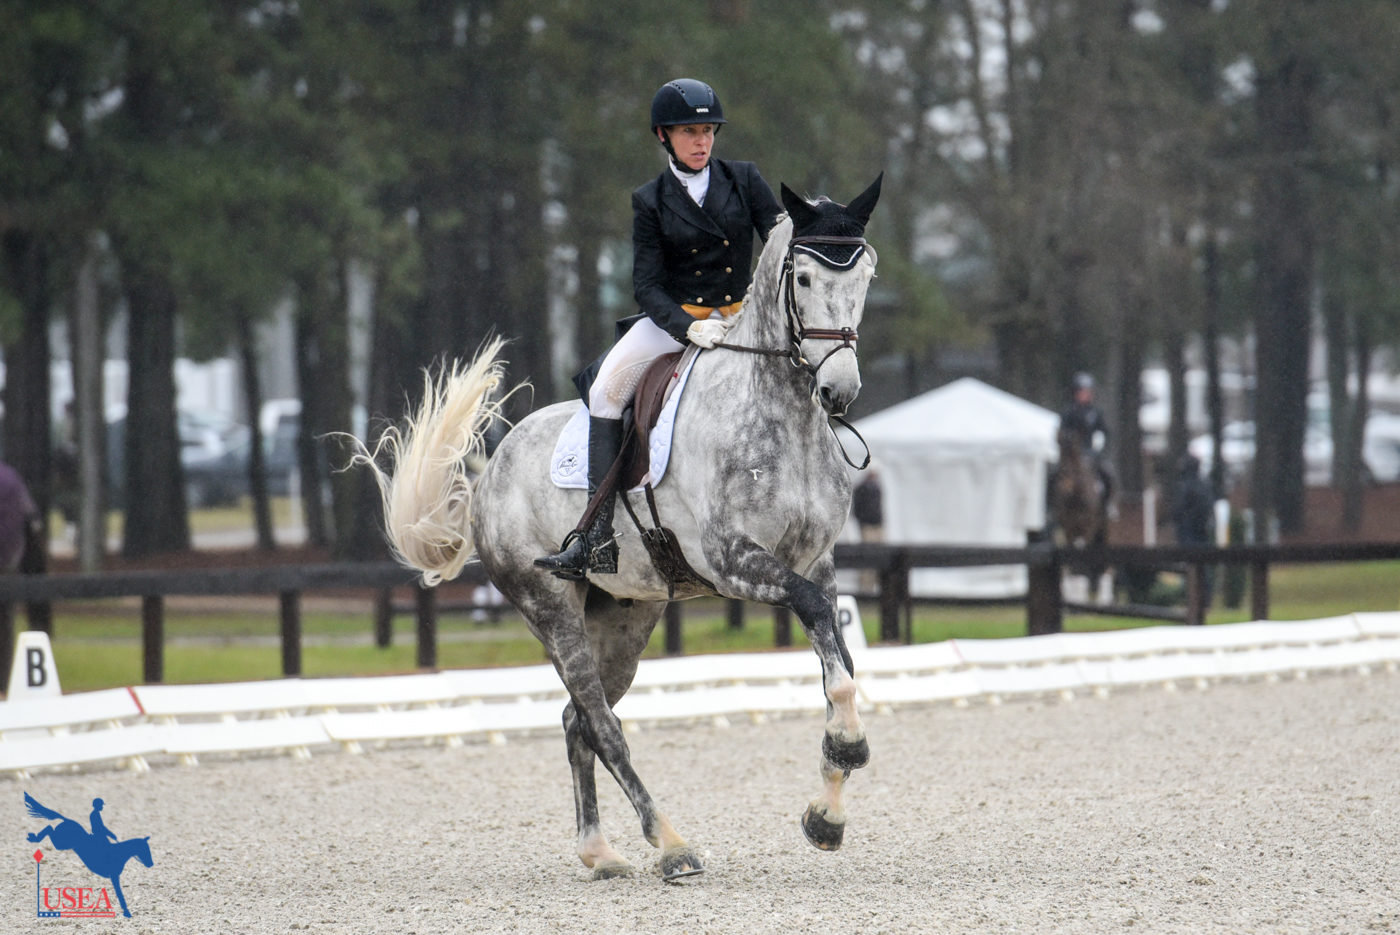 12th - Liz Halliday-Sharp and Cooley Quicksilver - 34.10